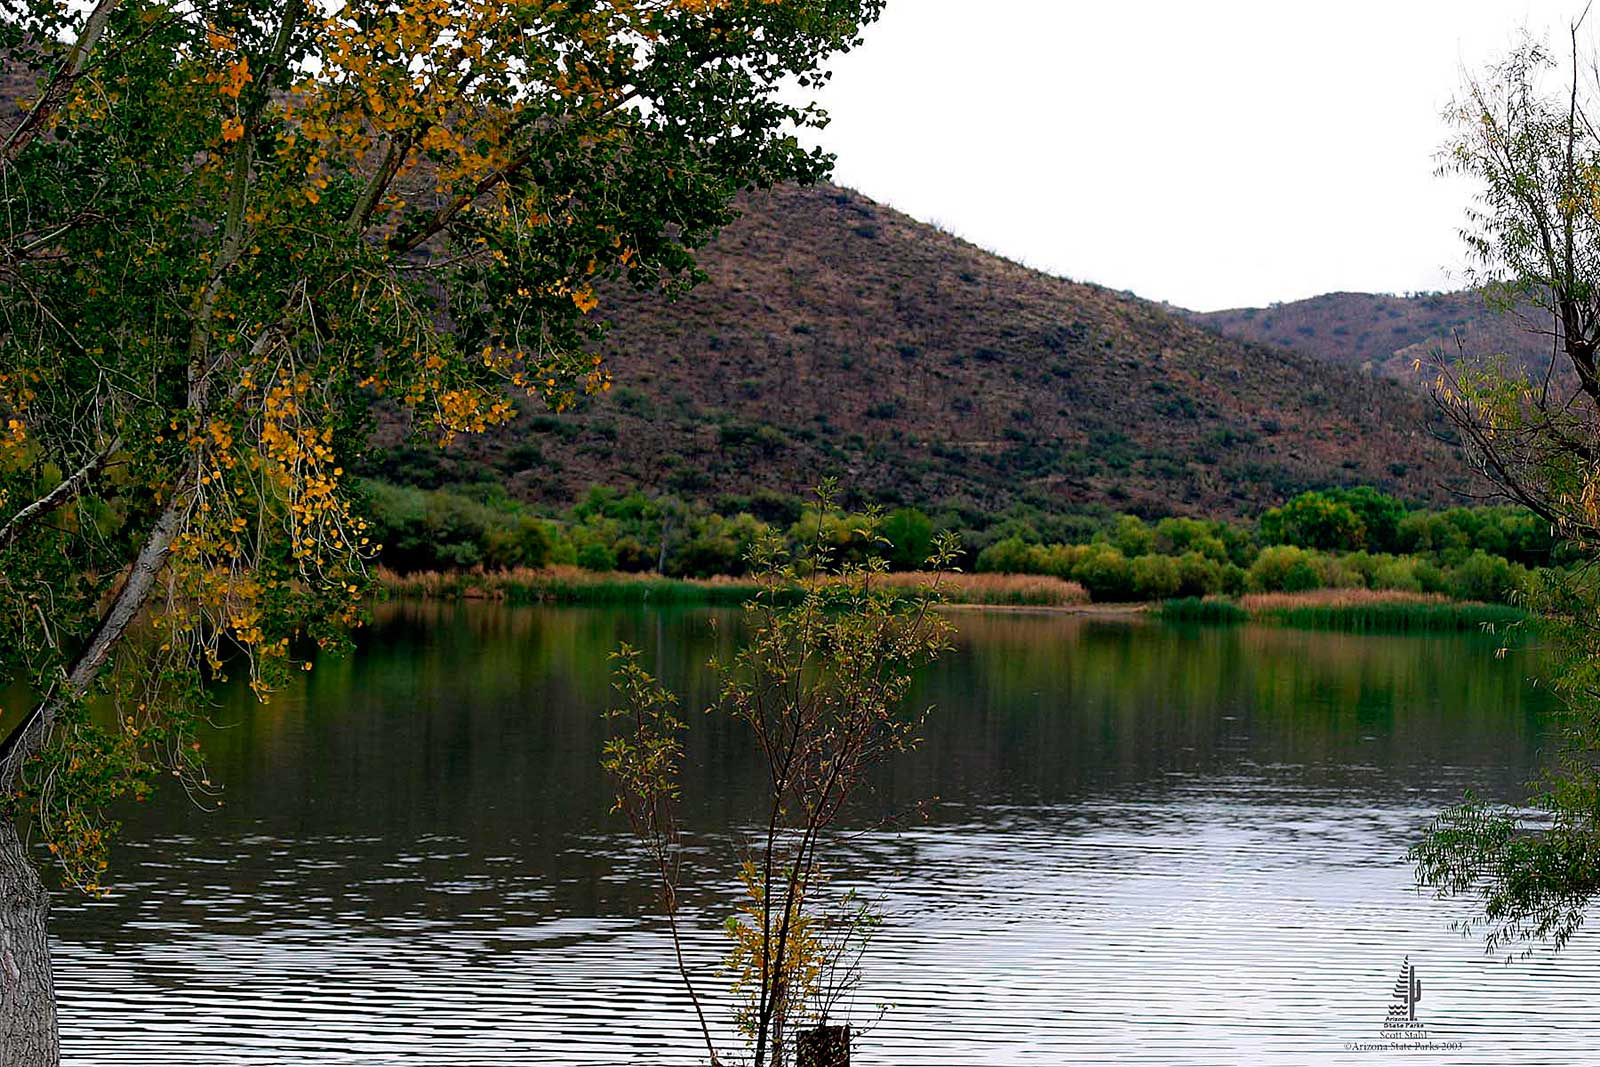 Patagonia lake state park tucson attractions for Patagonia lake fishing